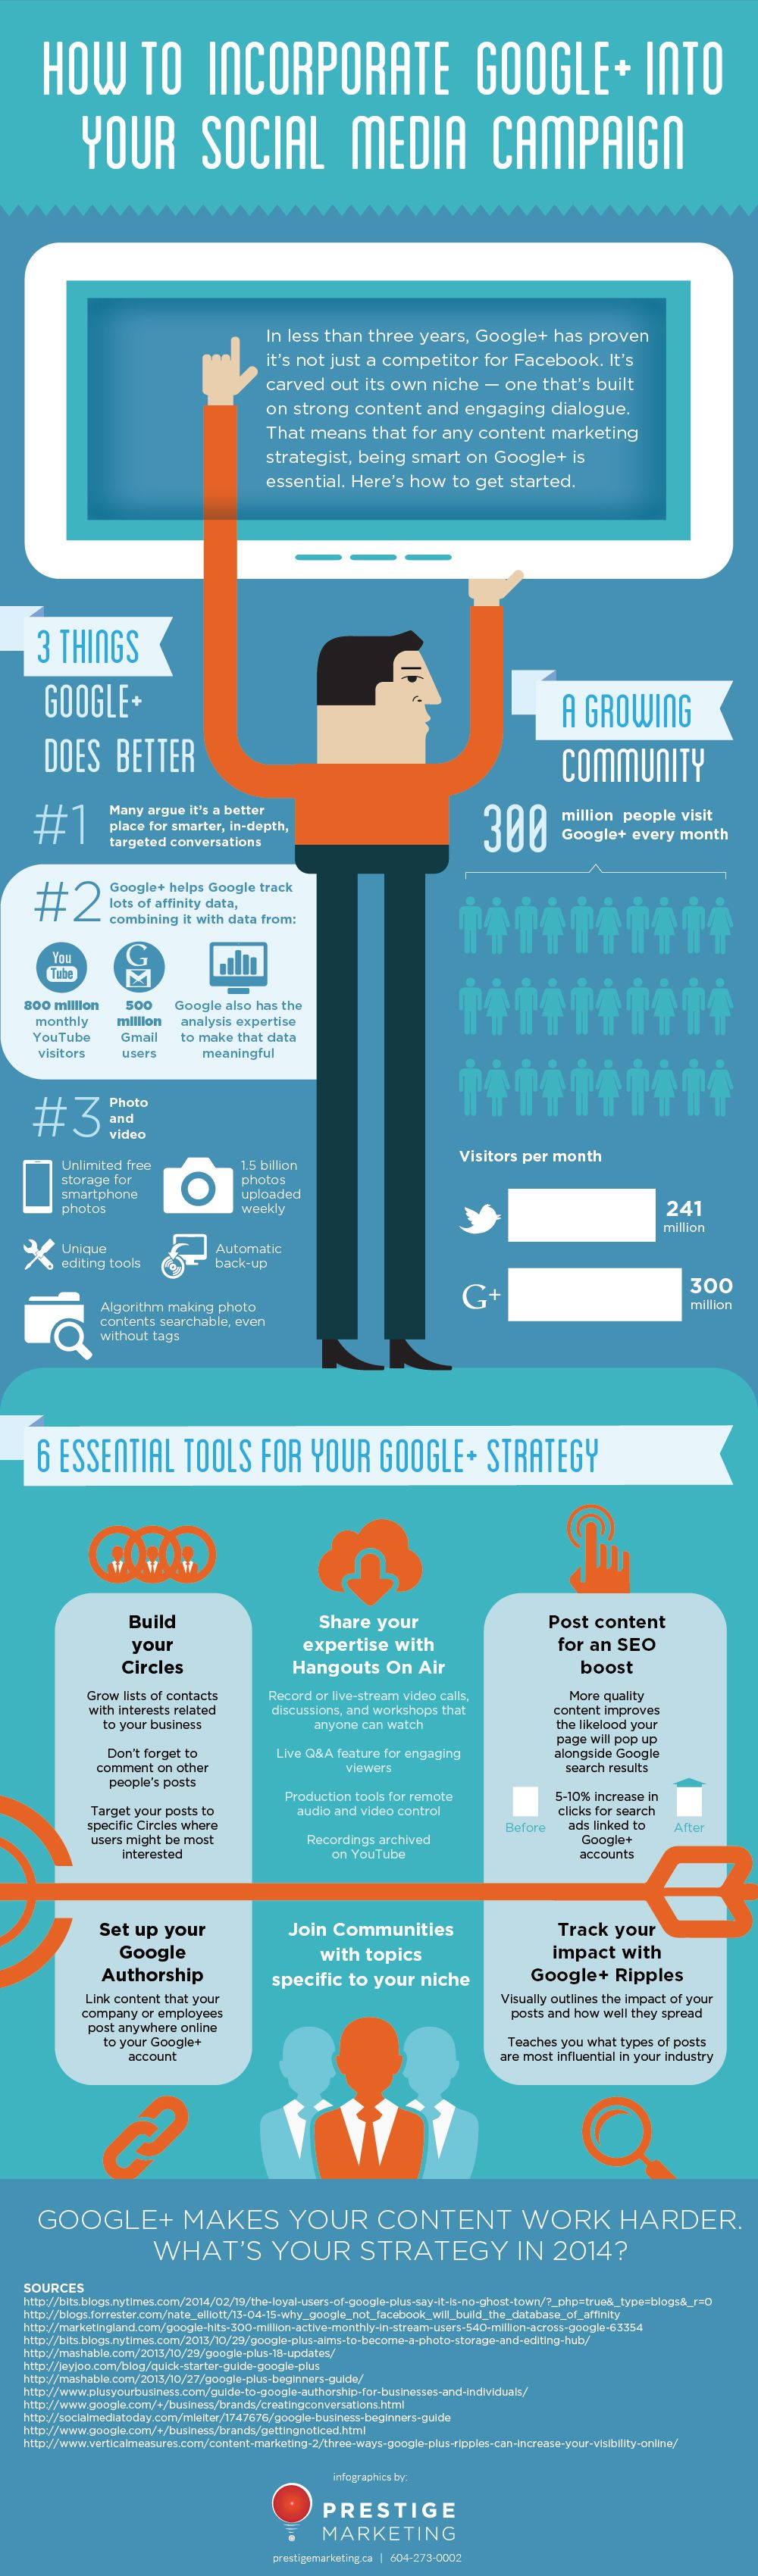 How to Incorporate Google+ Into Your Social Media Campaign #Infographic #infografía